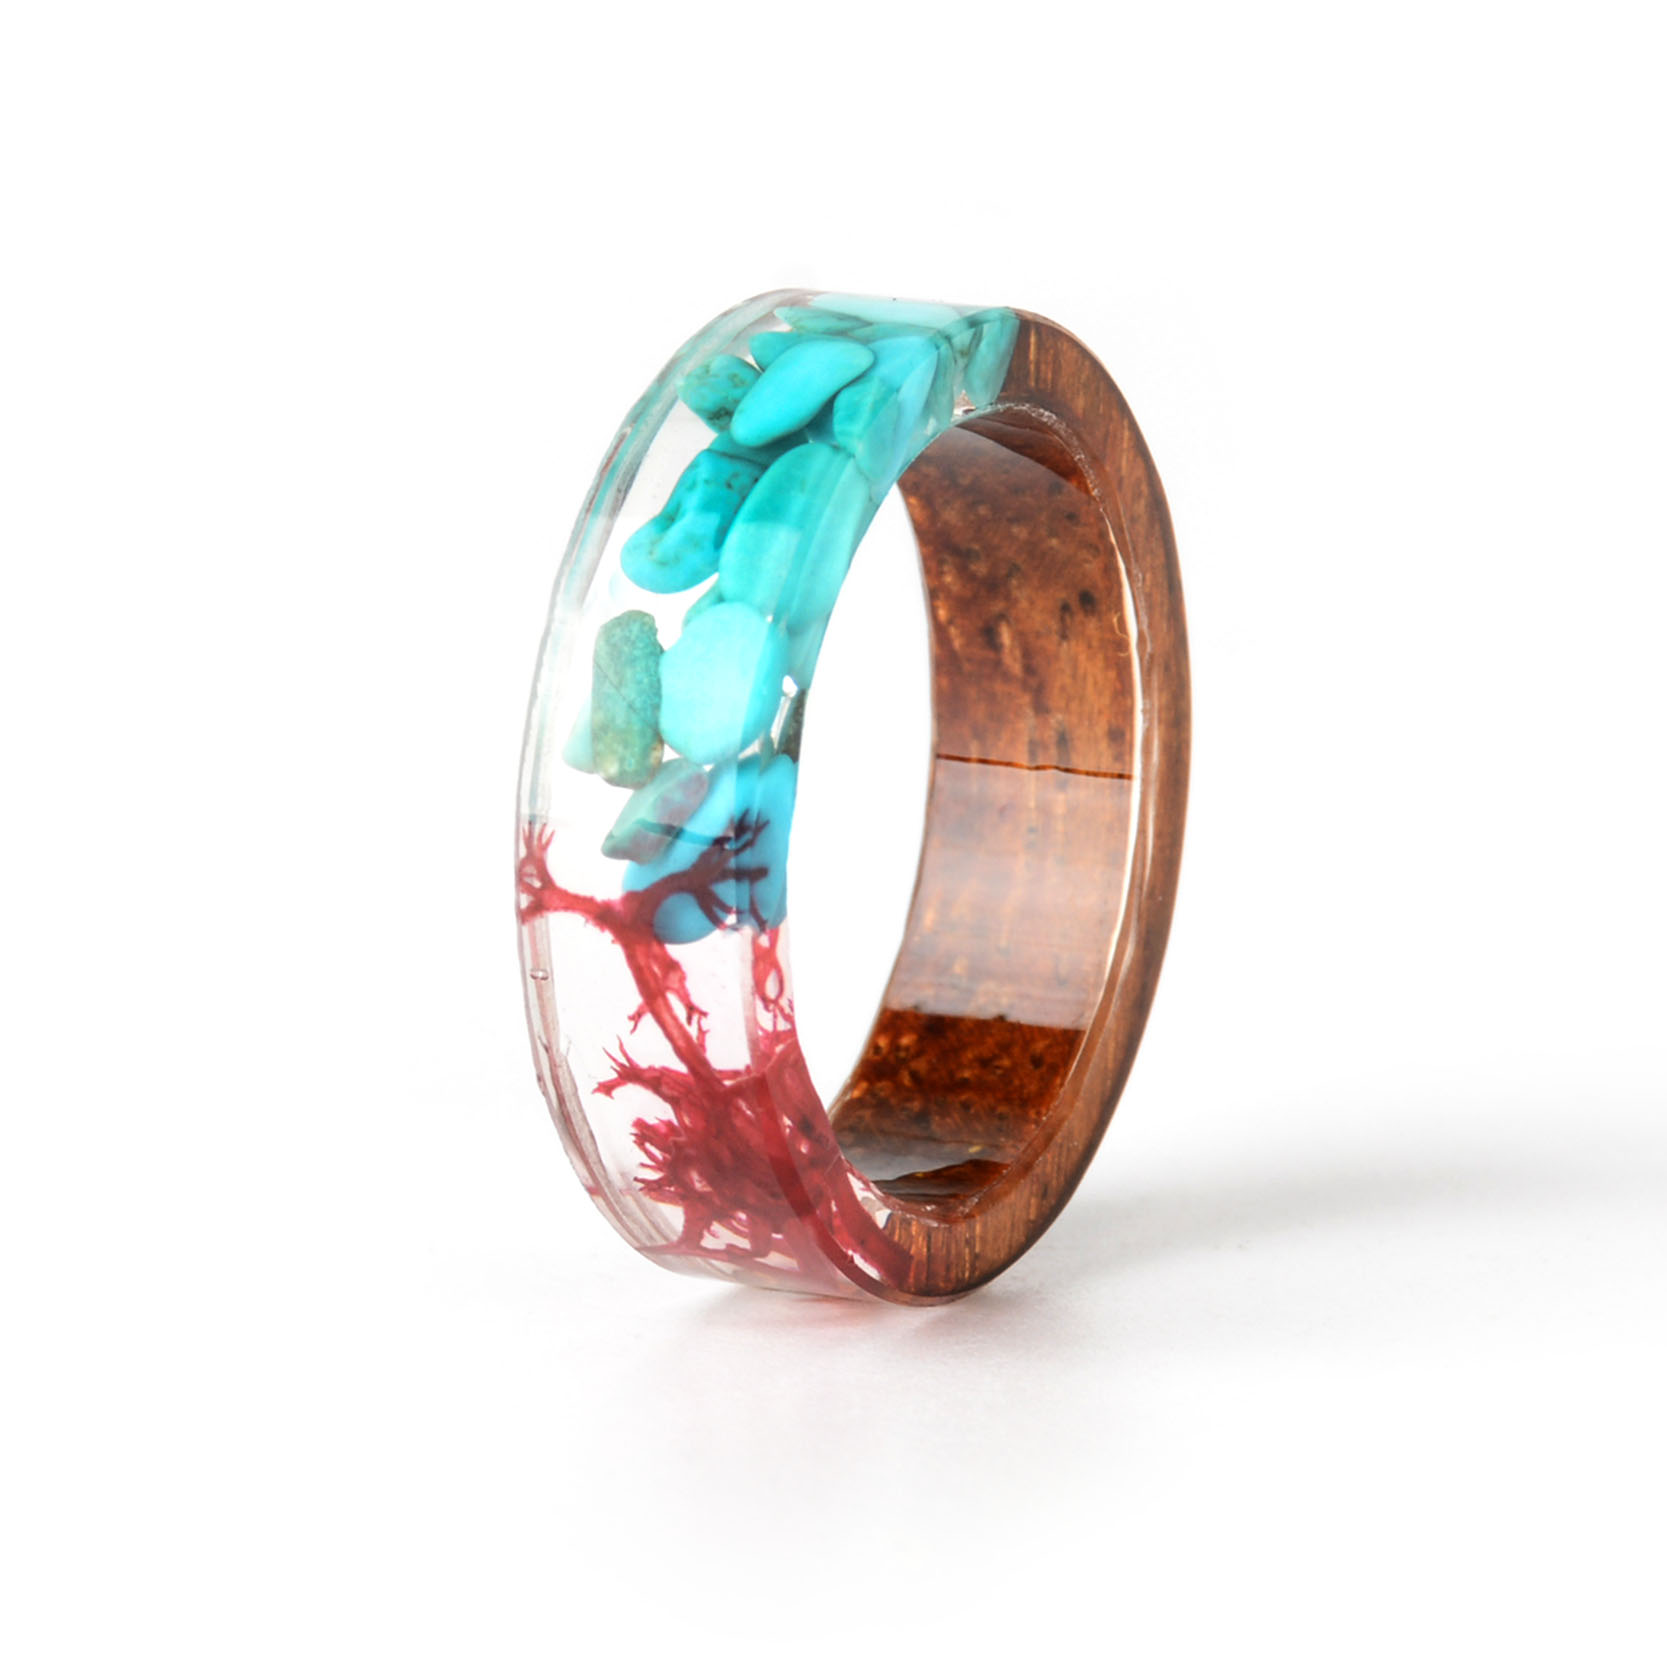 Handmade Wood Resin Ring Many Styles 27